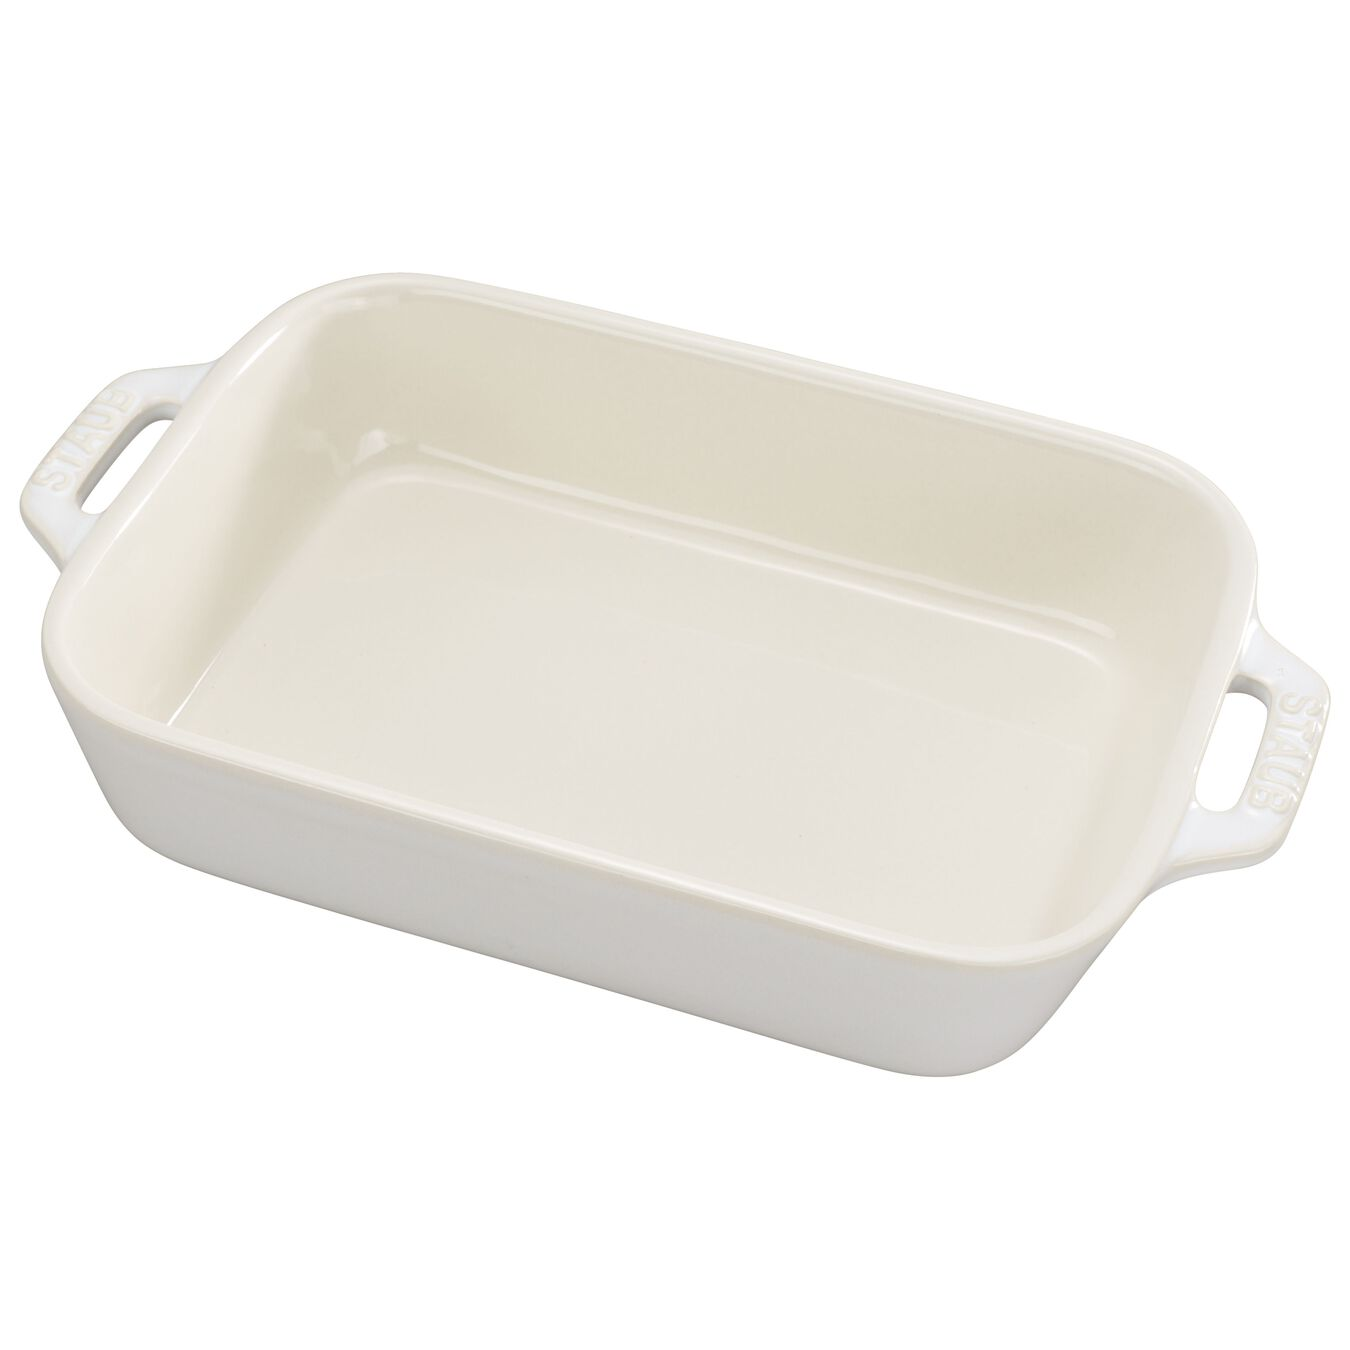 7.5-inch x 6-inch Rectangular Baking Dish - Rustic Ivory,,large 1